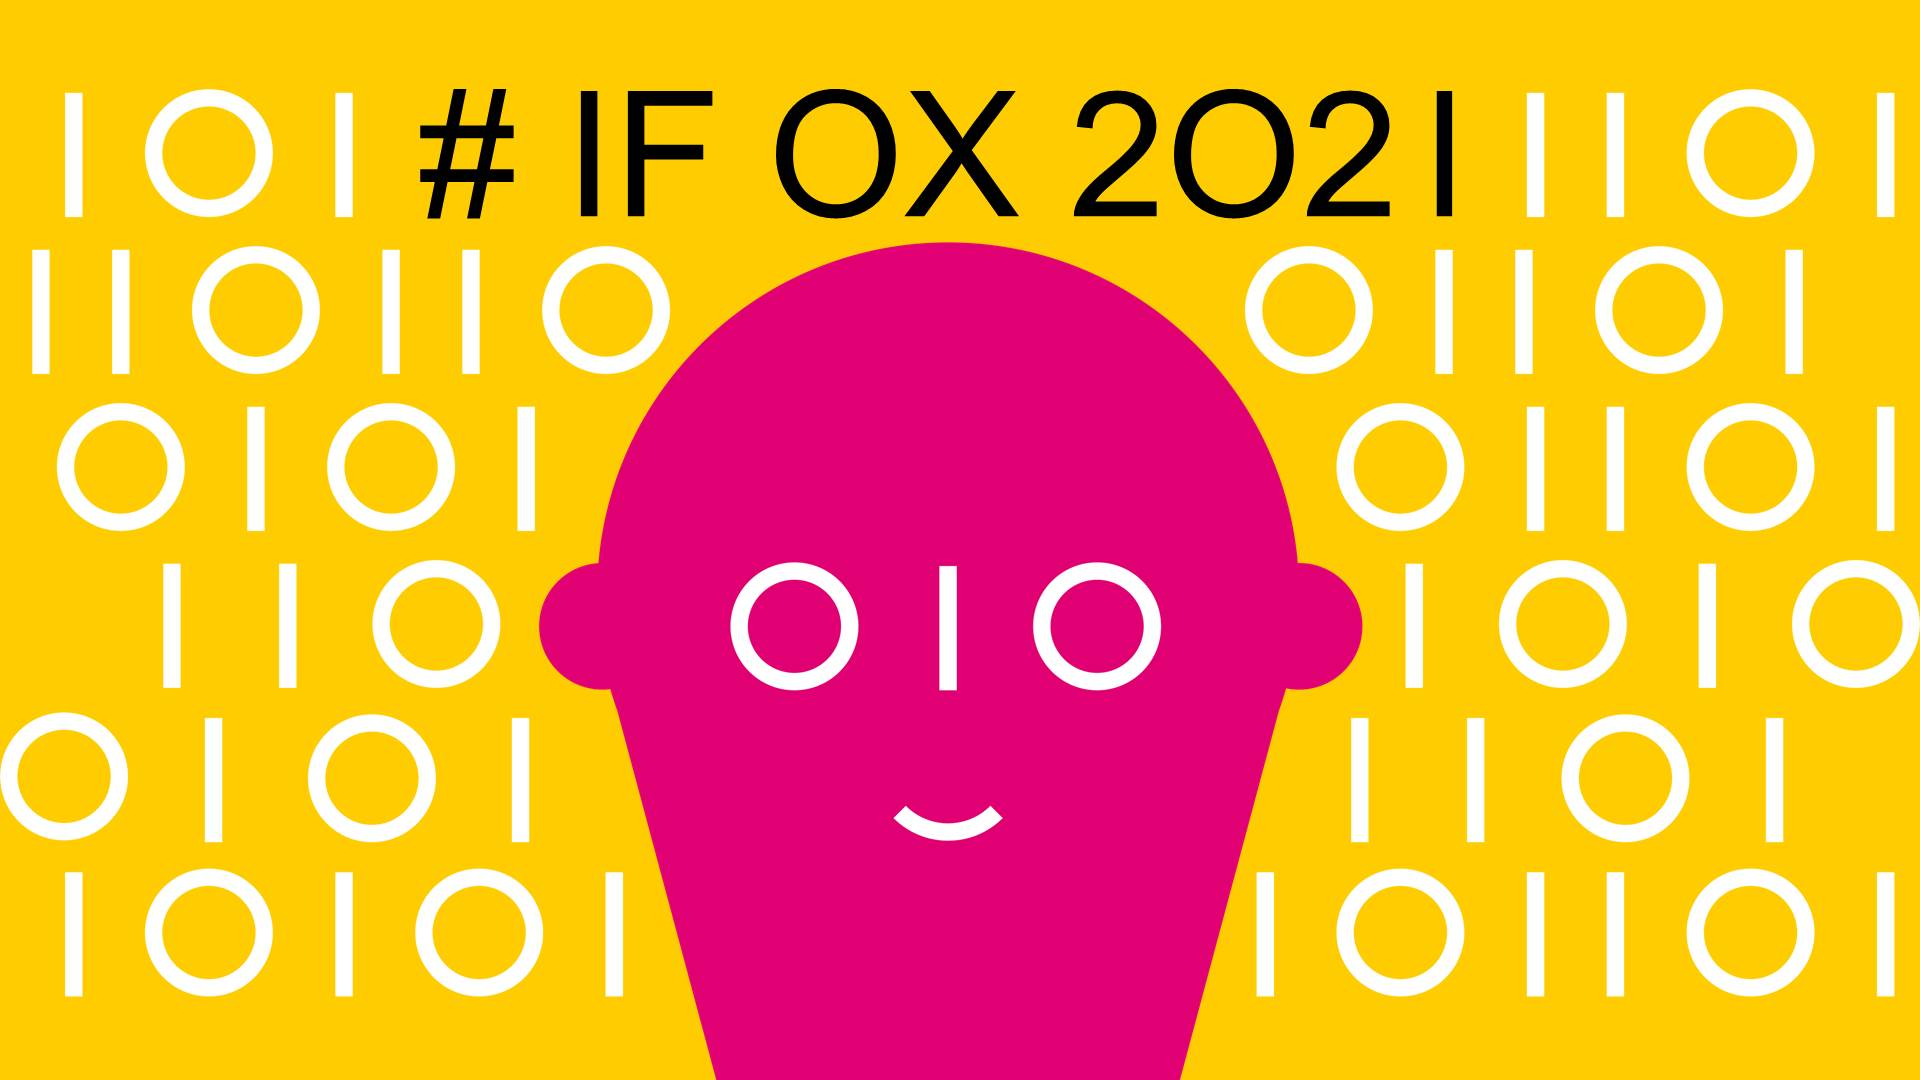 IF Oxford 2021 - Oxford science and ideas Festival